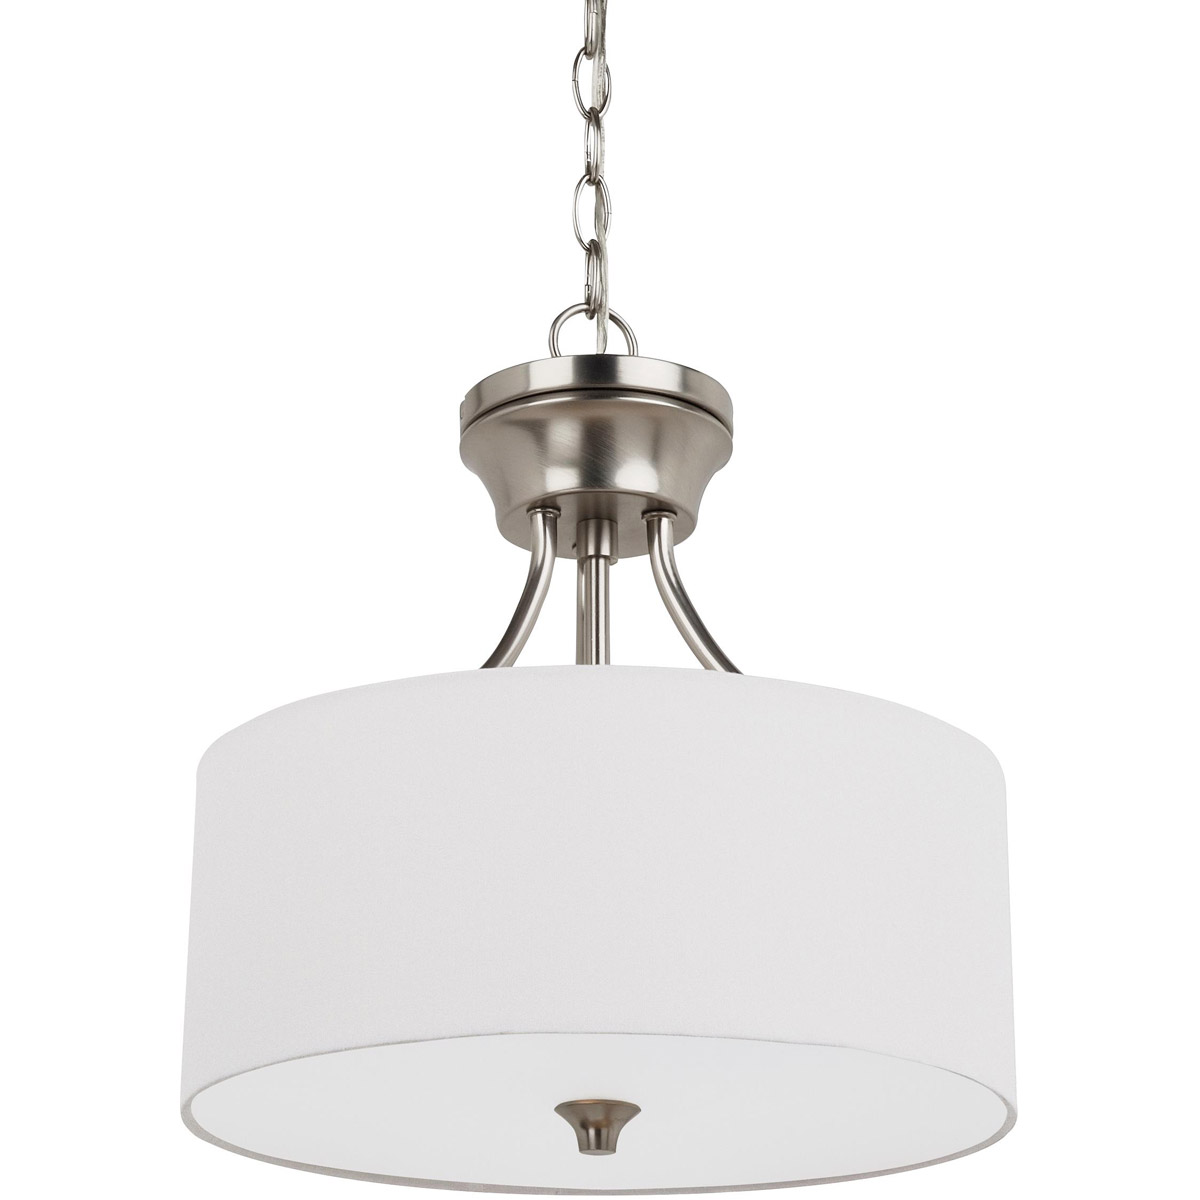 Sea Gull Stirling 2 Light Semi-Flush Convertible Pendant in Brushed Nickel 77952BLE-962 photo